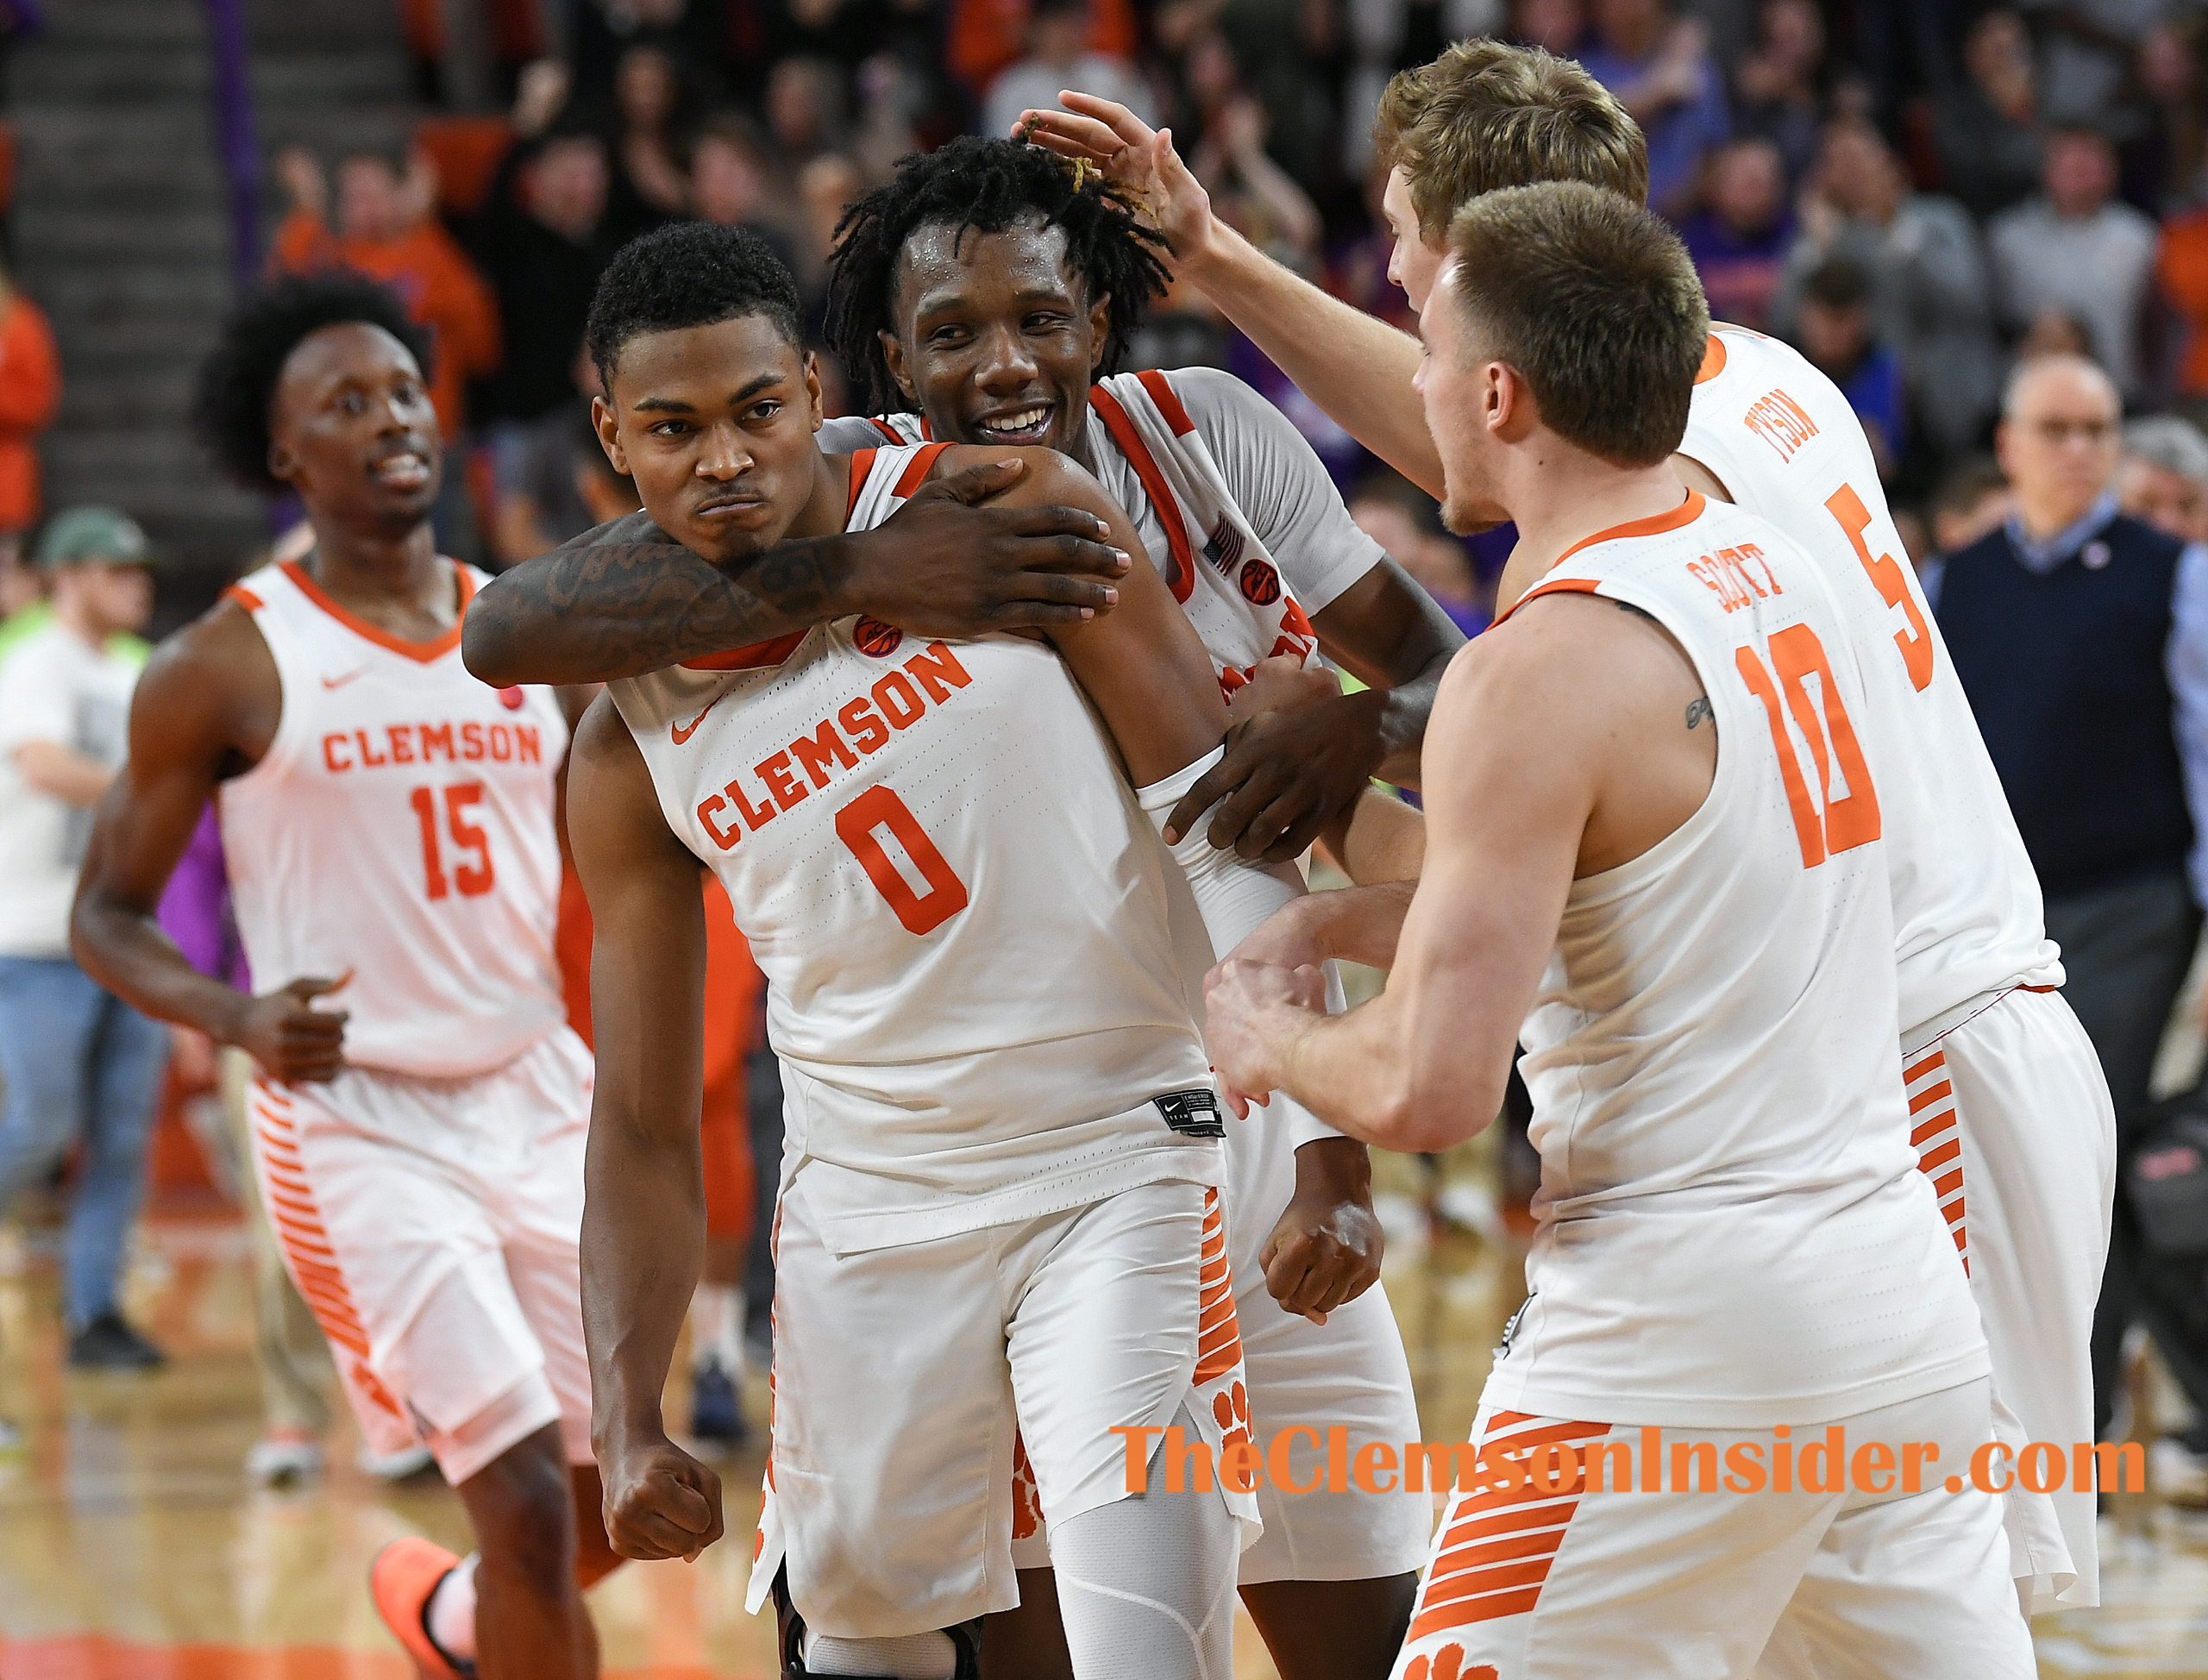 Clemson's from left, Clyde Trapp (0), Tevin Mack (13), Hunter Tyson (5), and Curran Scott (10) celebrate after the Tigers defeated Syracuse 71-70 Tuesday, January 28, 2020 at Clemson's Littlejohn Coliseum. Bart Boatwright/The Clemson Insider